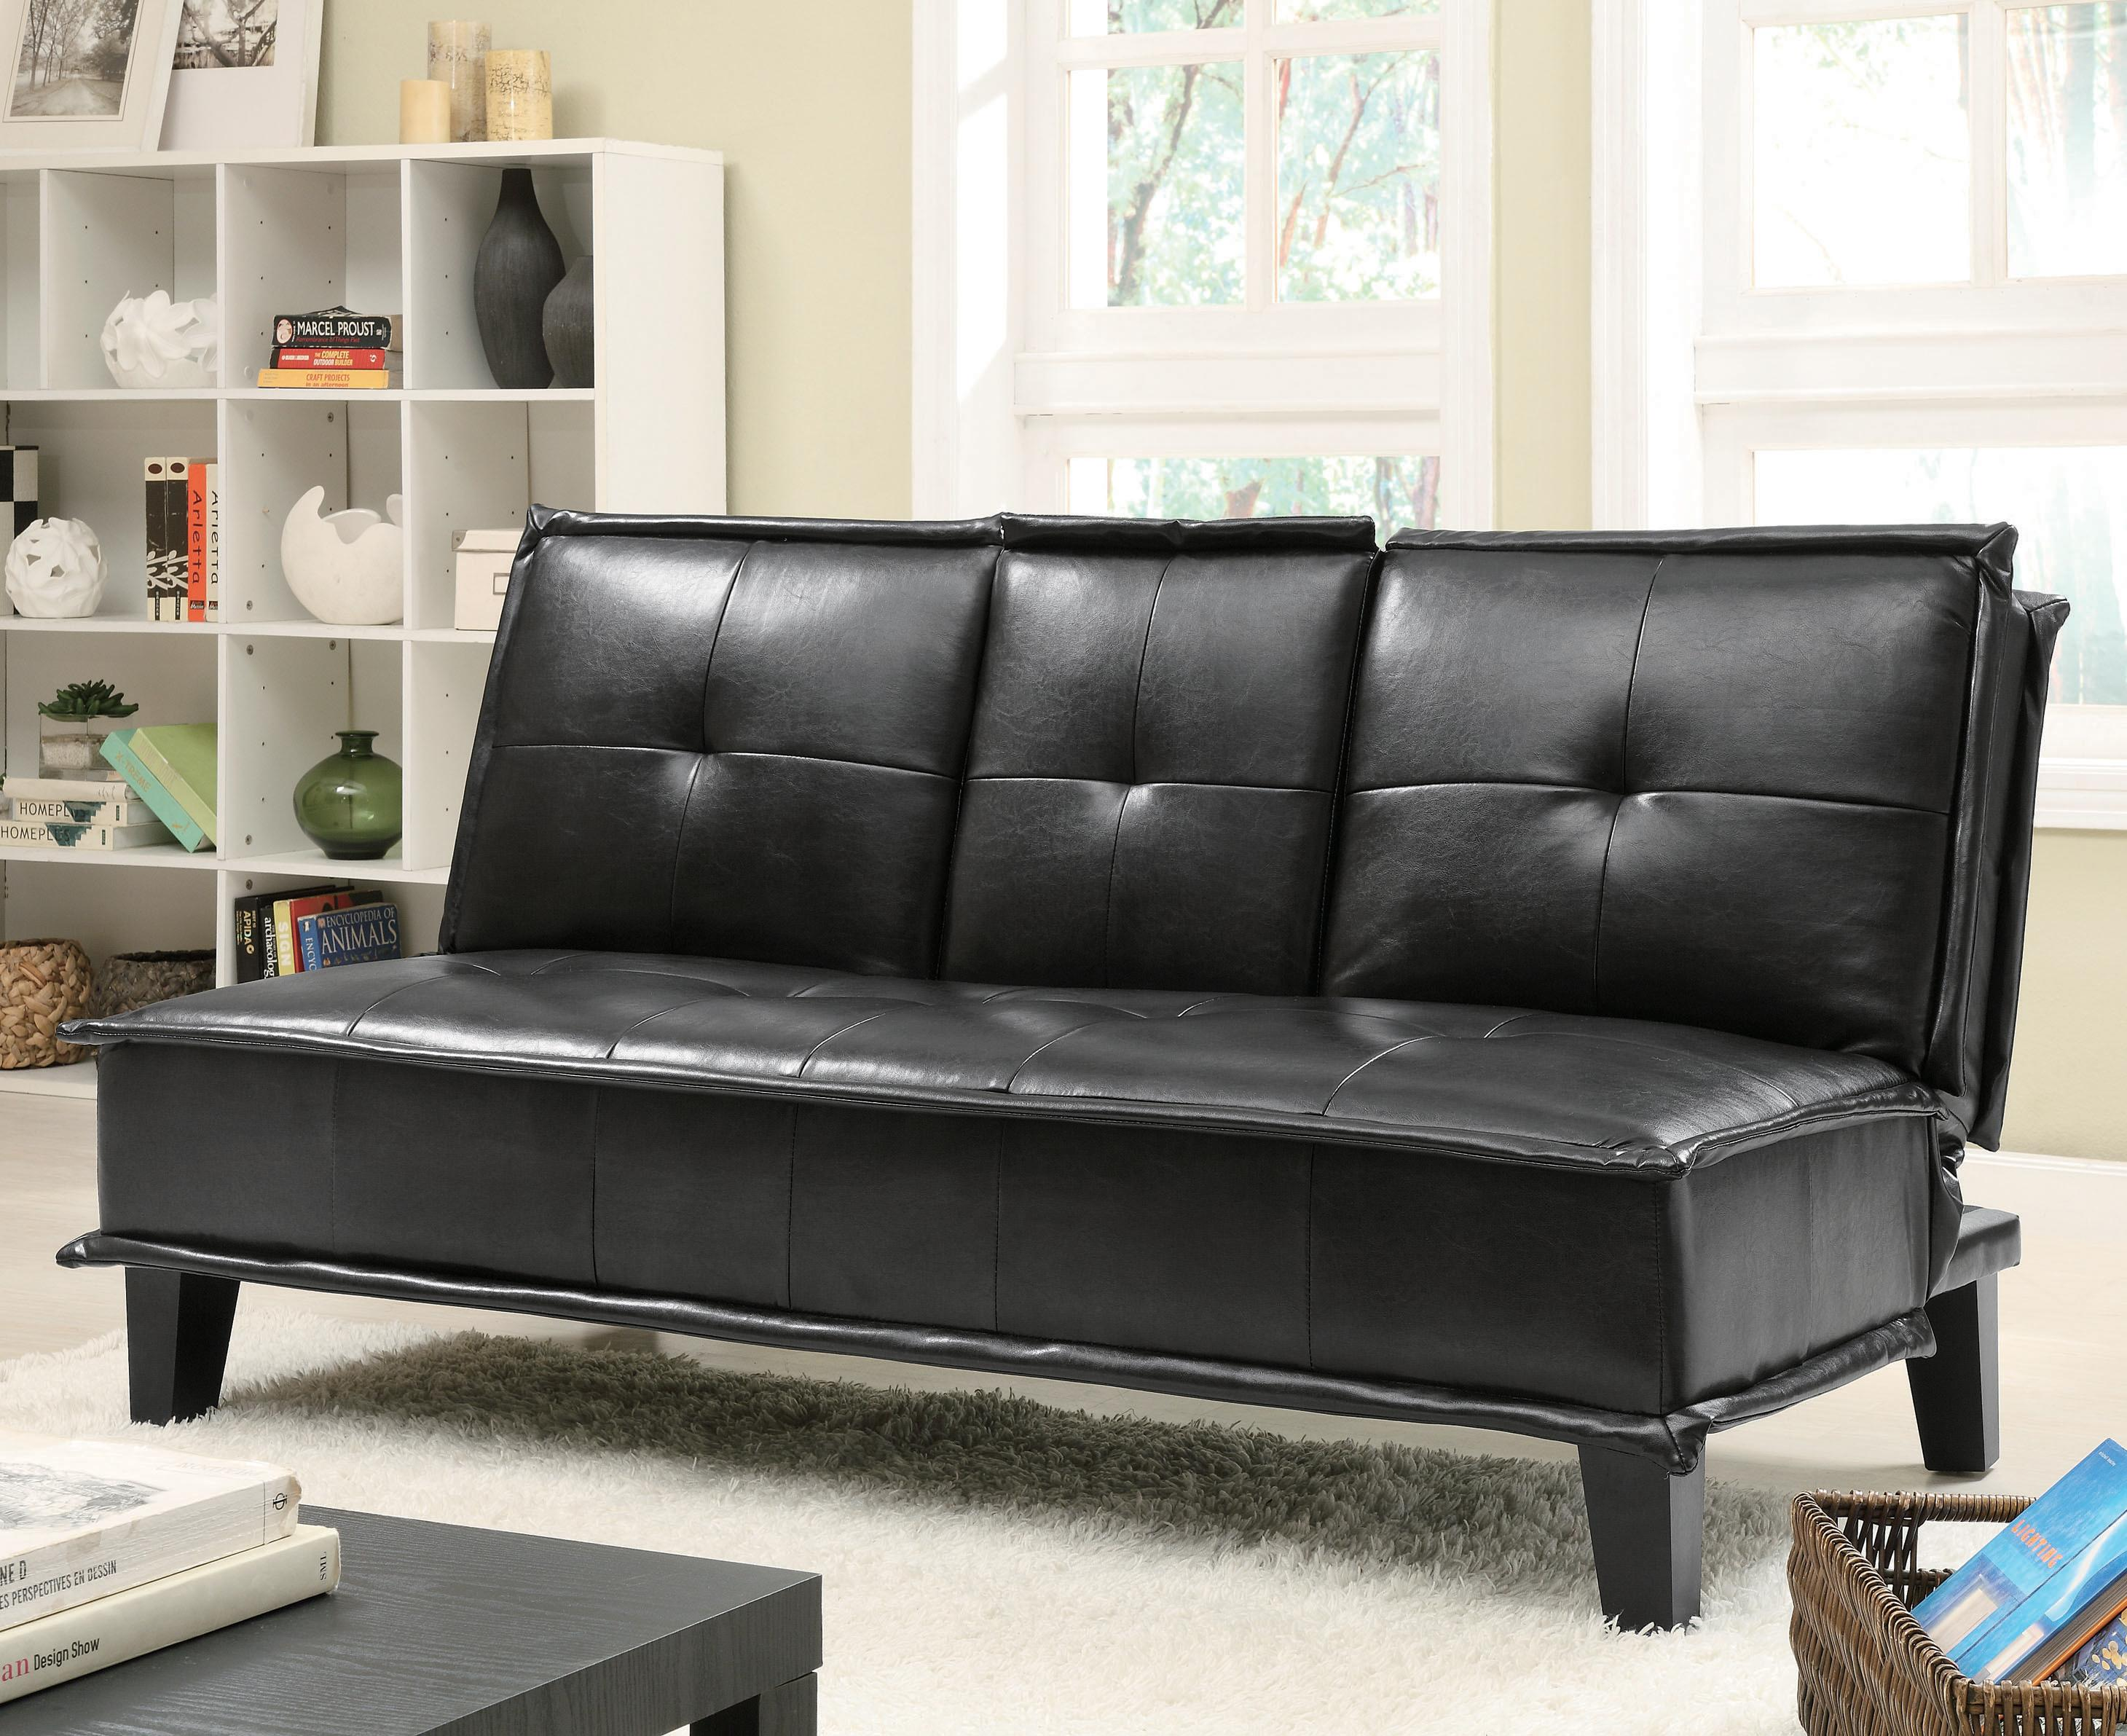 Coaster Sofa Beds And Futons Bed Item Number 300138